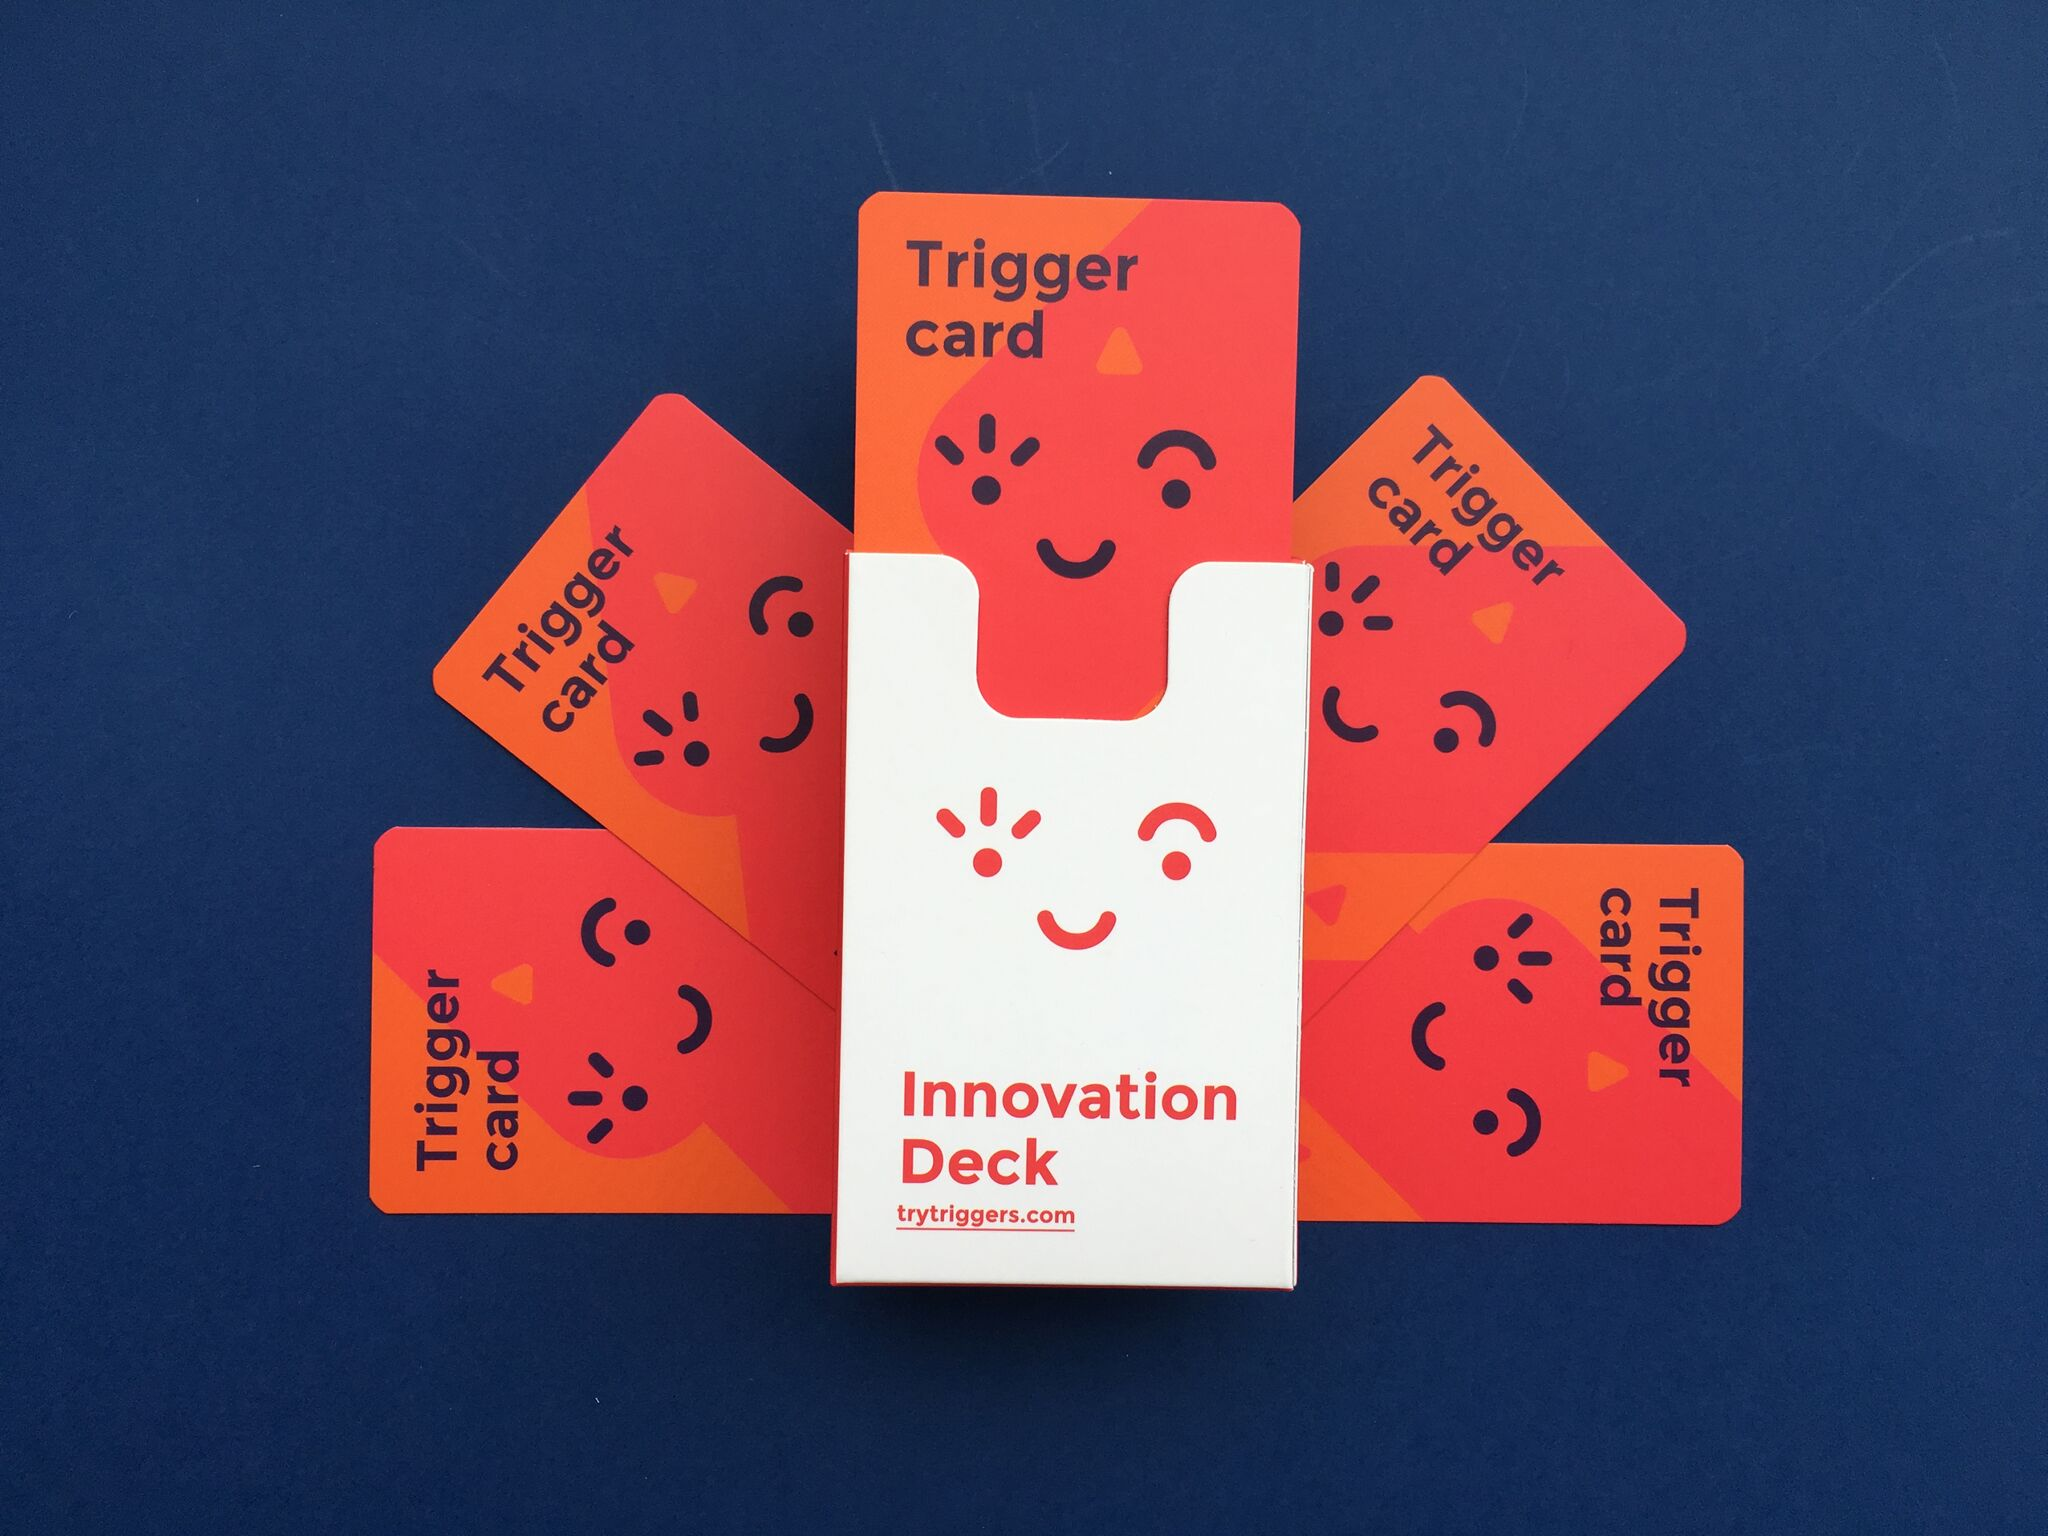 triggers_cards_innovation